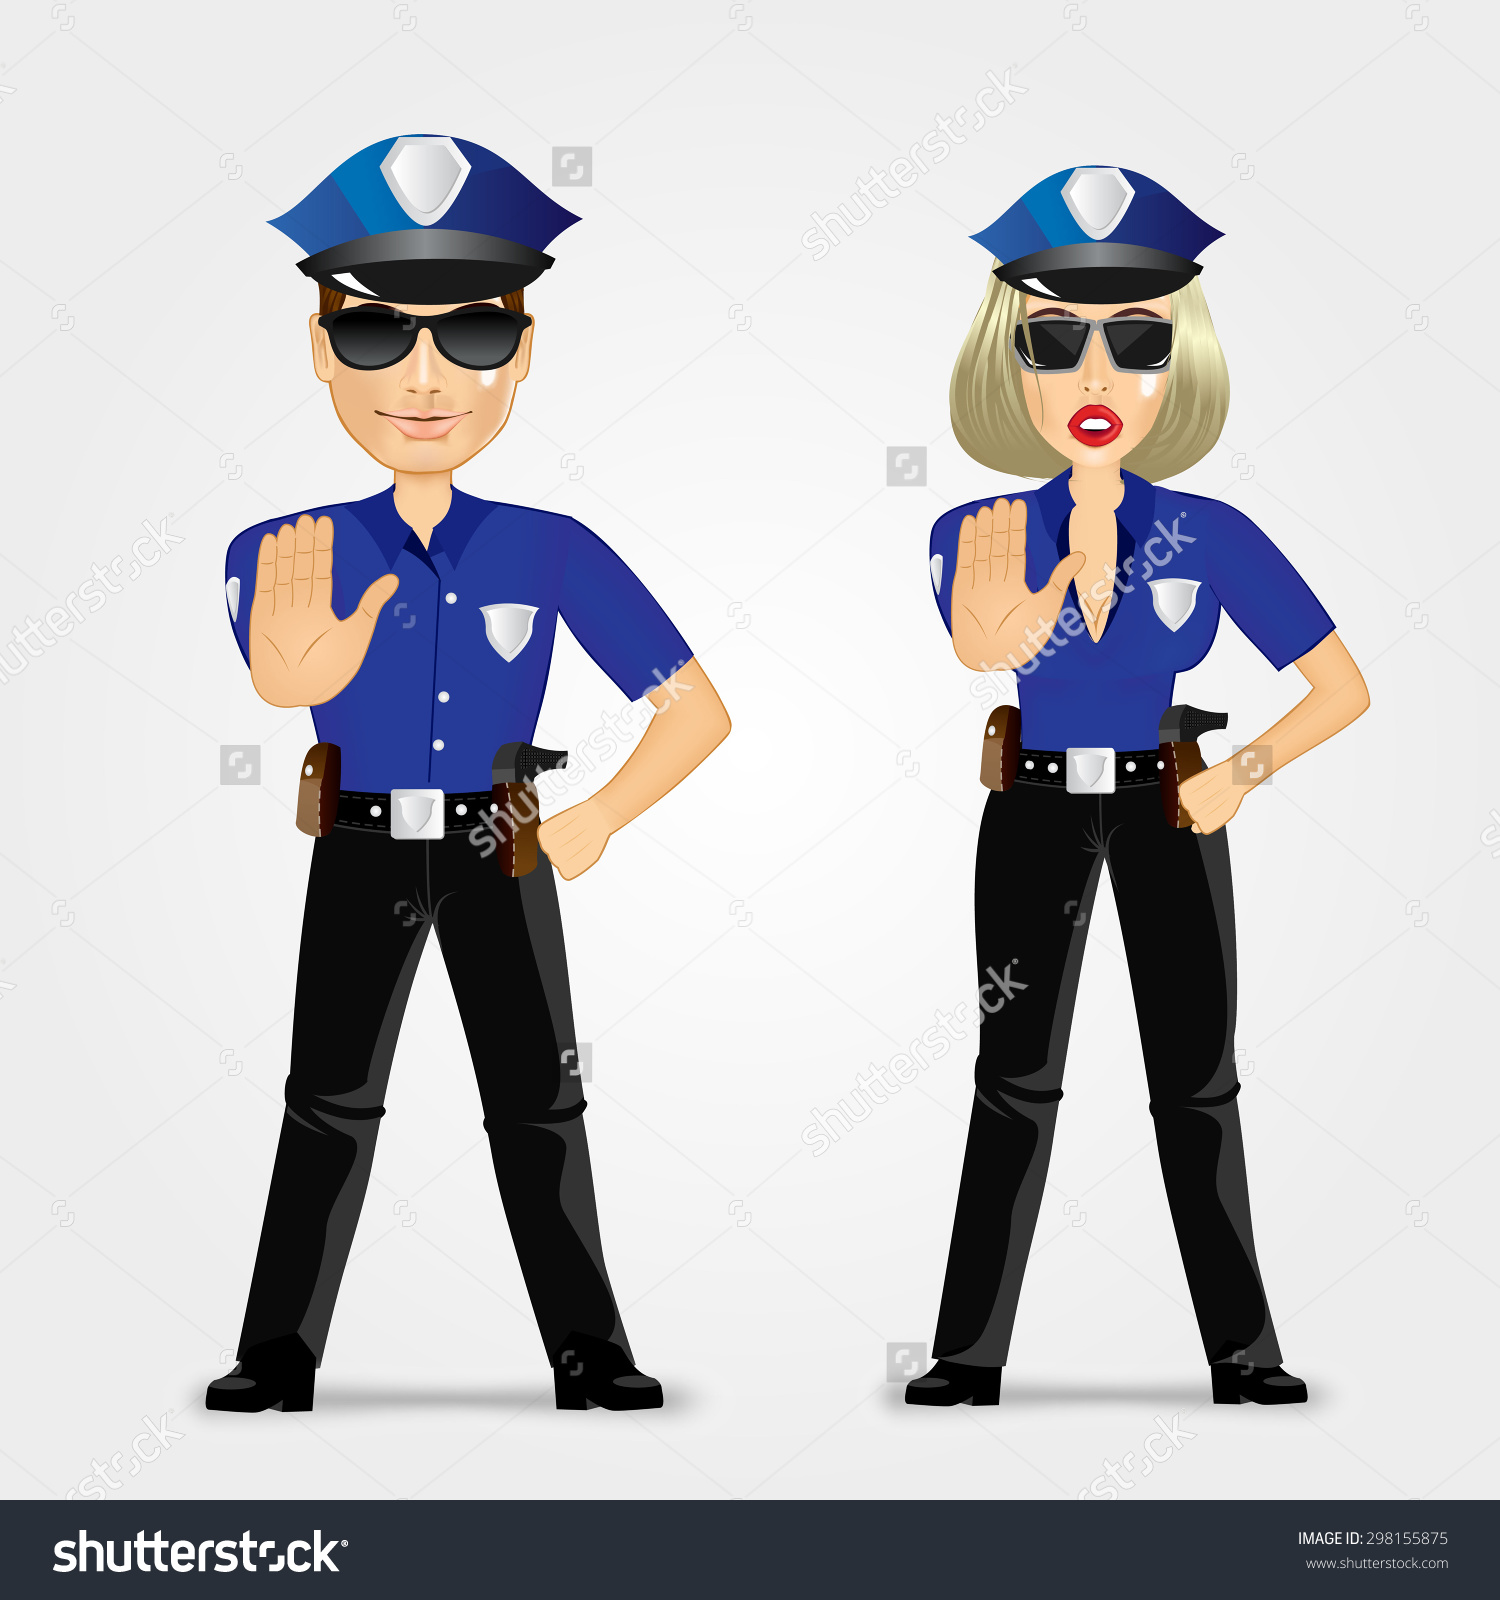 Police traffic woman clipart svg black and white Free clipart police woman - ClipartFest svg black and white